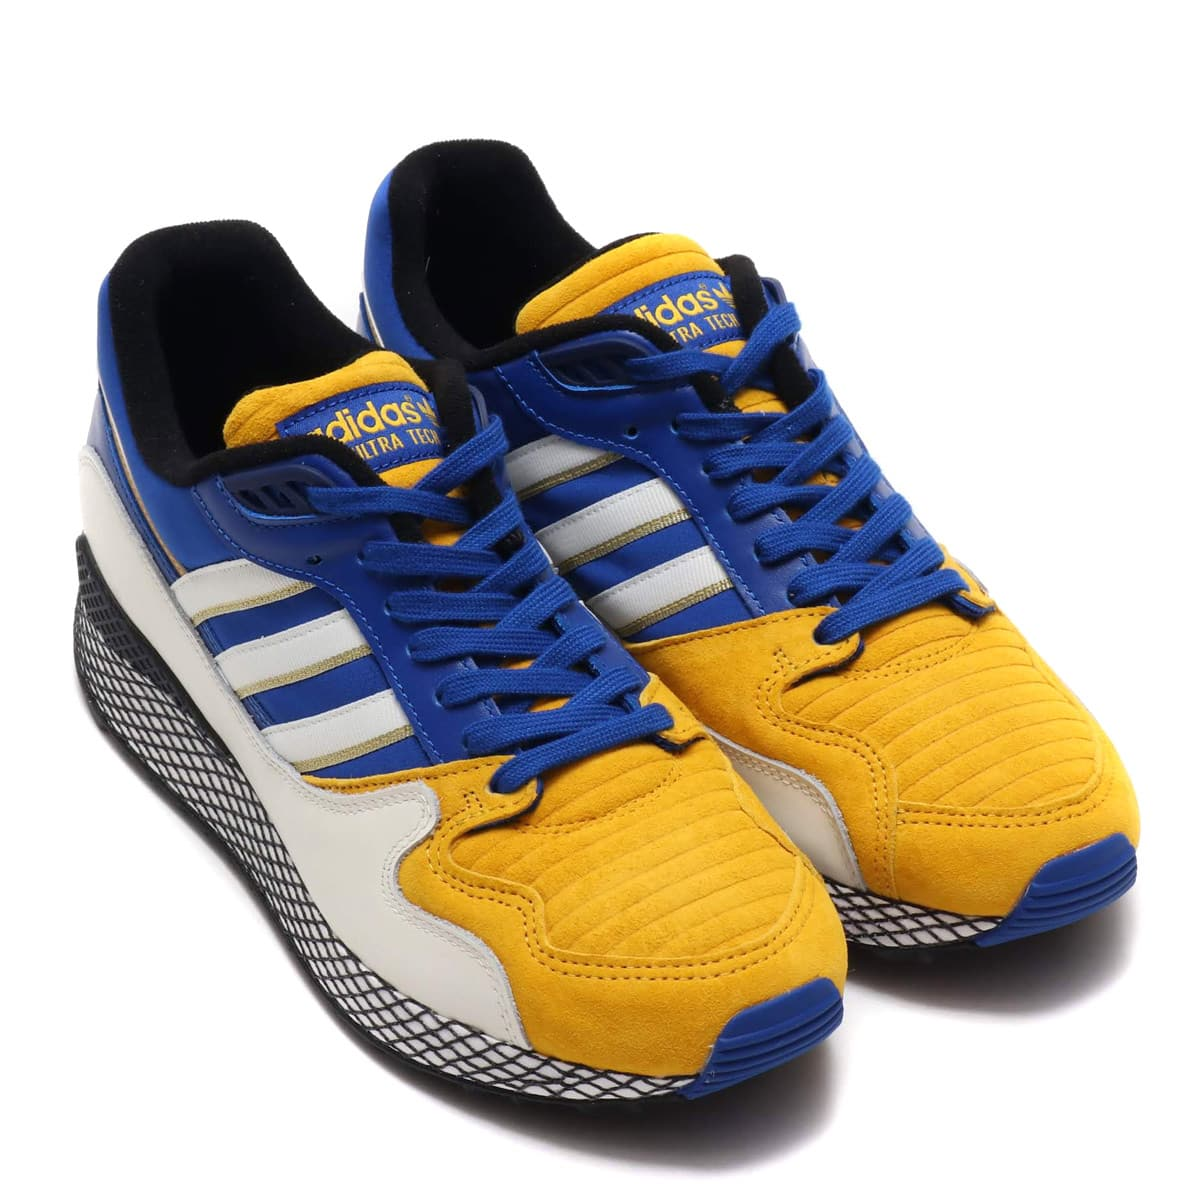 adidas Originals ULTRA TECH DB SUPPLIER COLOR/SUPPLIER COLOR/SUPPLIER COLOR 18FW-I_photo_large